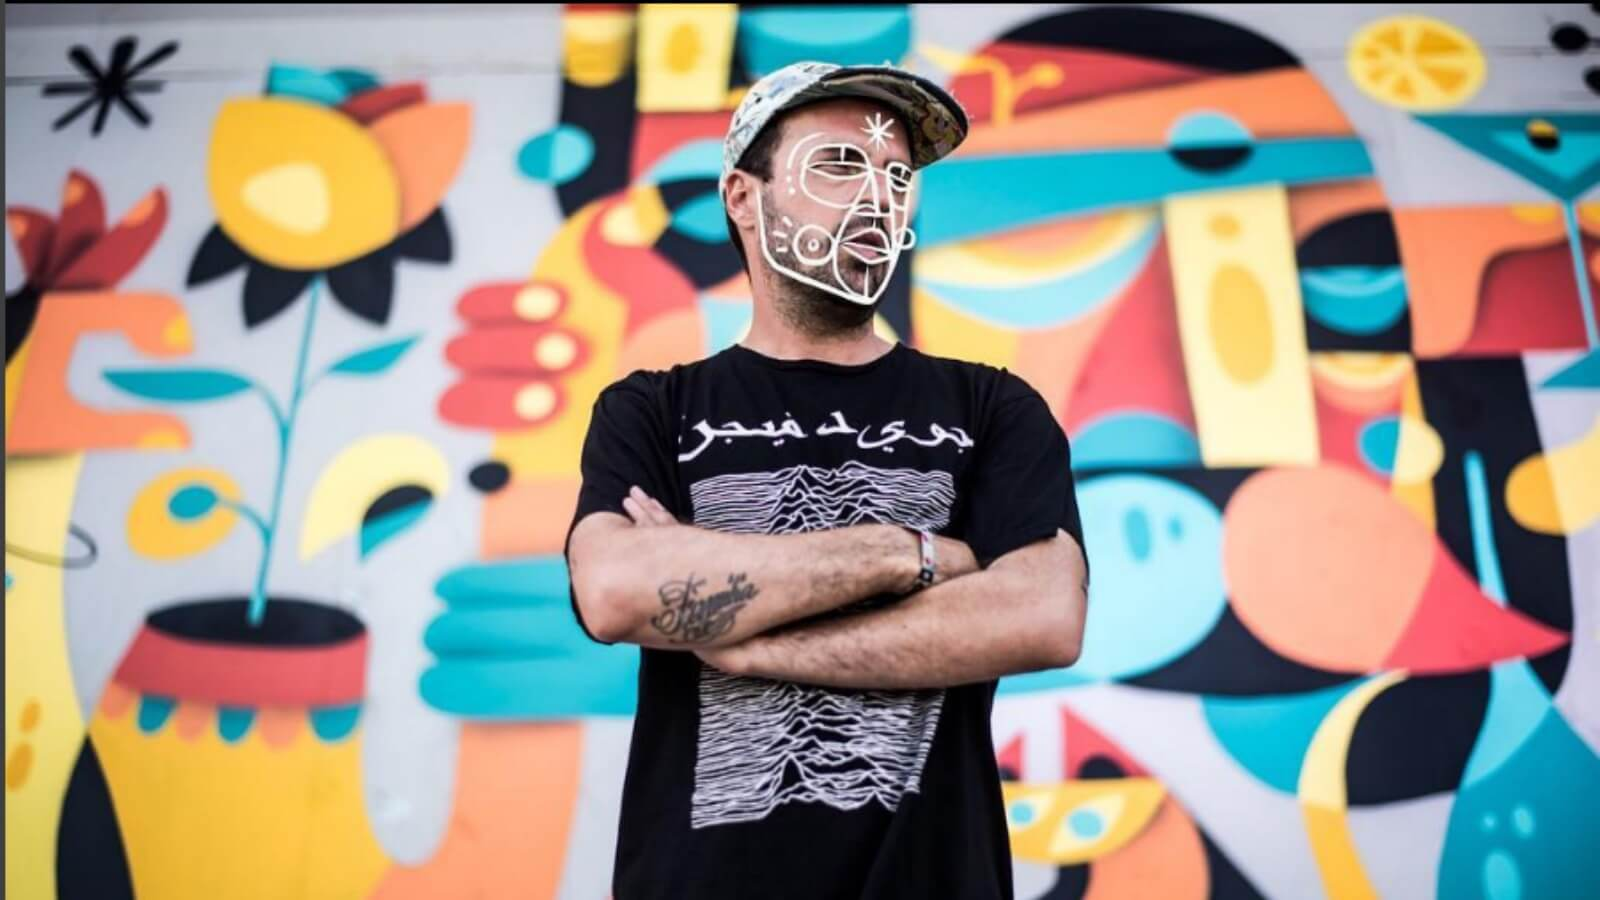 INTERVIEW: Rubén Sánchez participates in Mural Festival for the first time ?